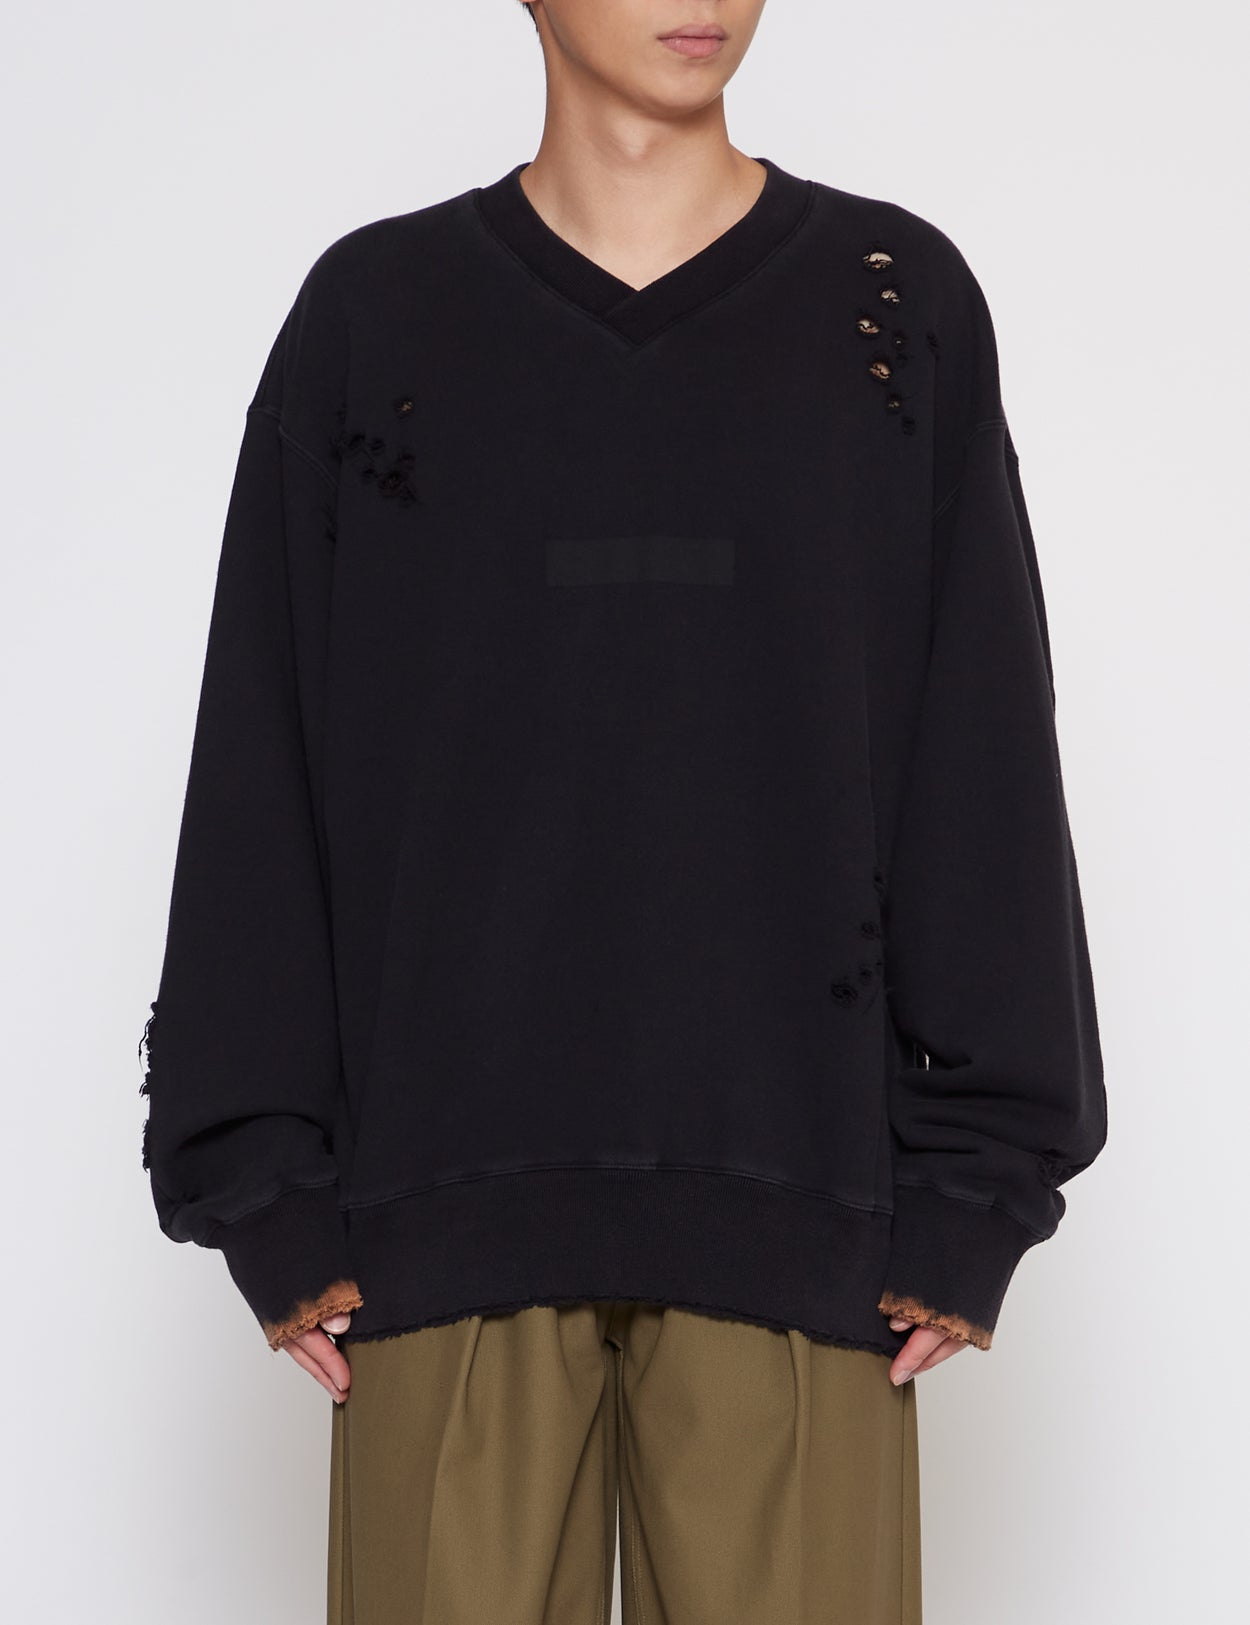 BLACK ARCHIVE V-NECK SWEATER